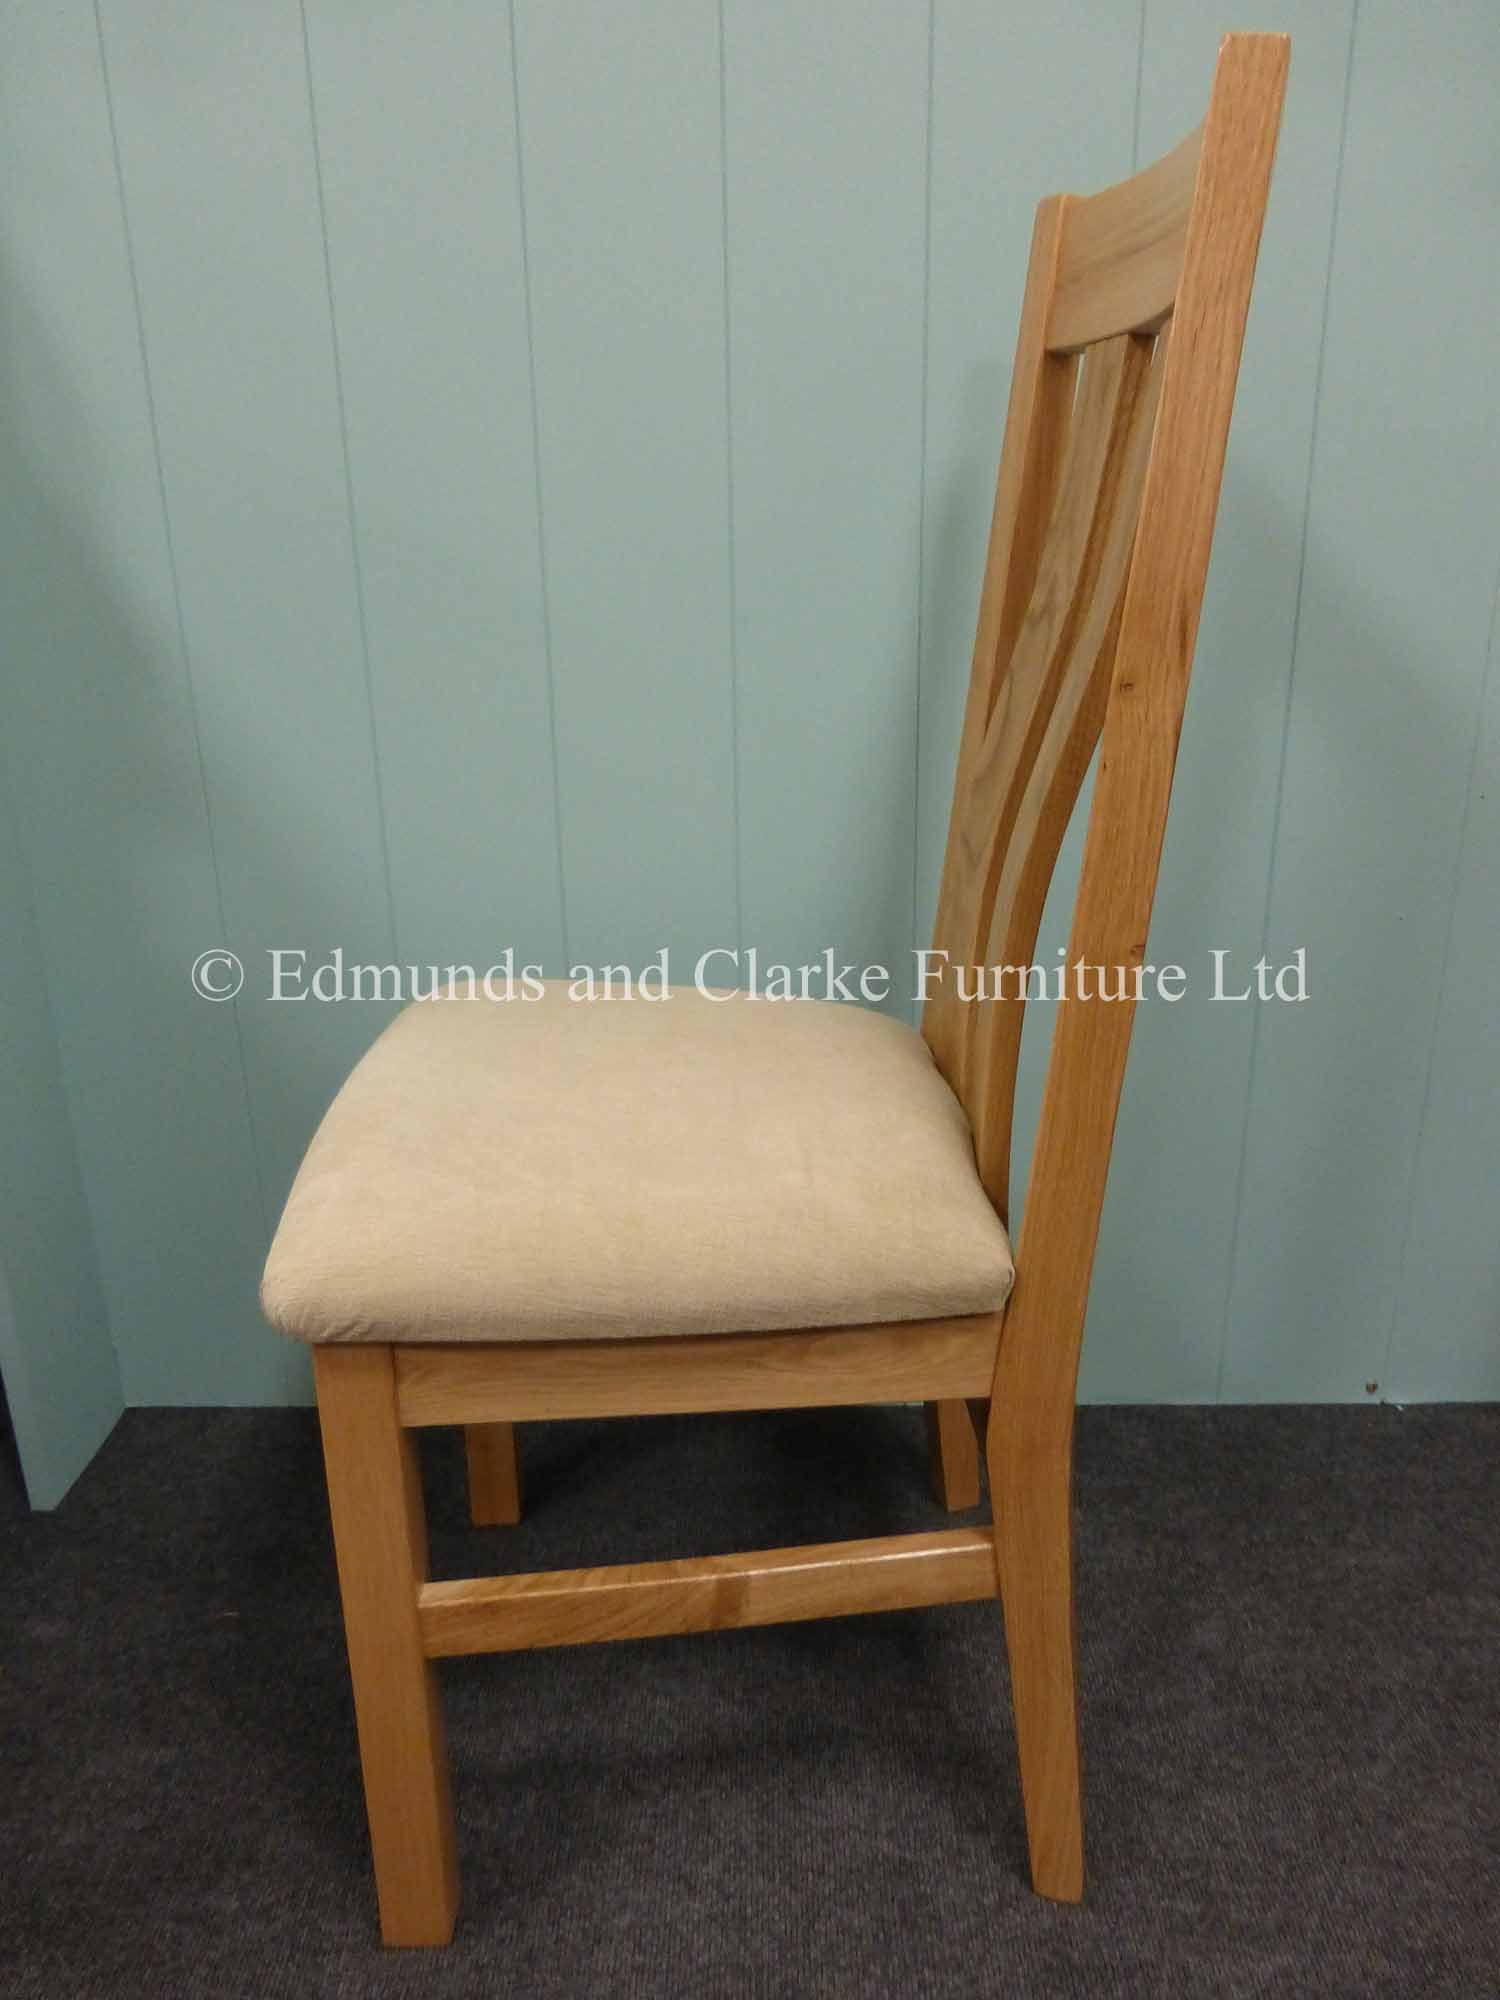 Harris oak dining chair available with choice of leather or fabric seat pads